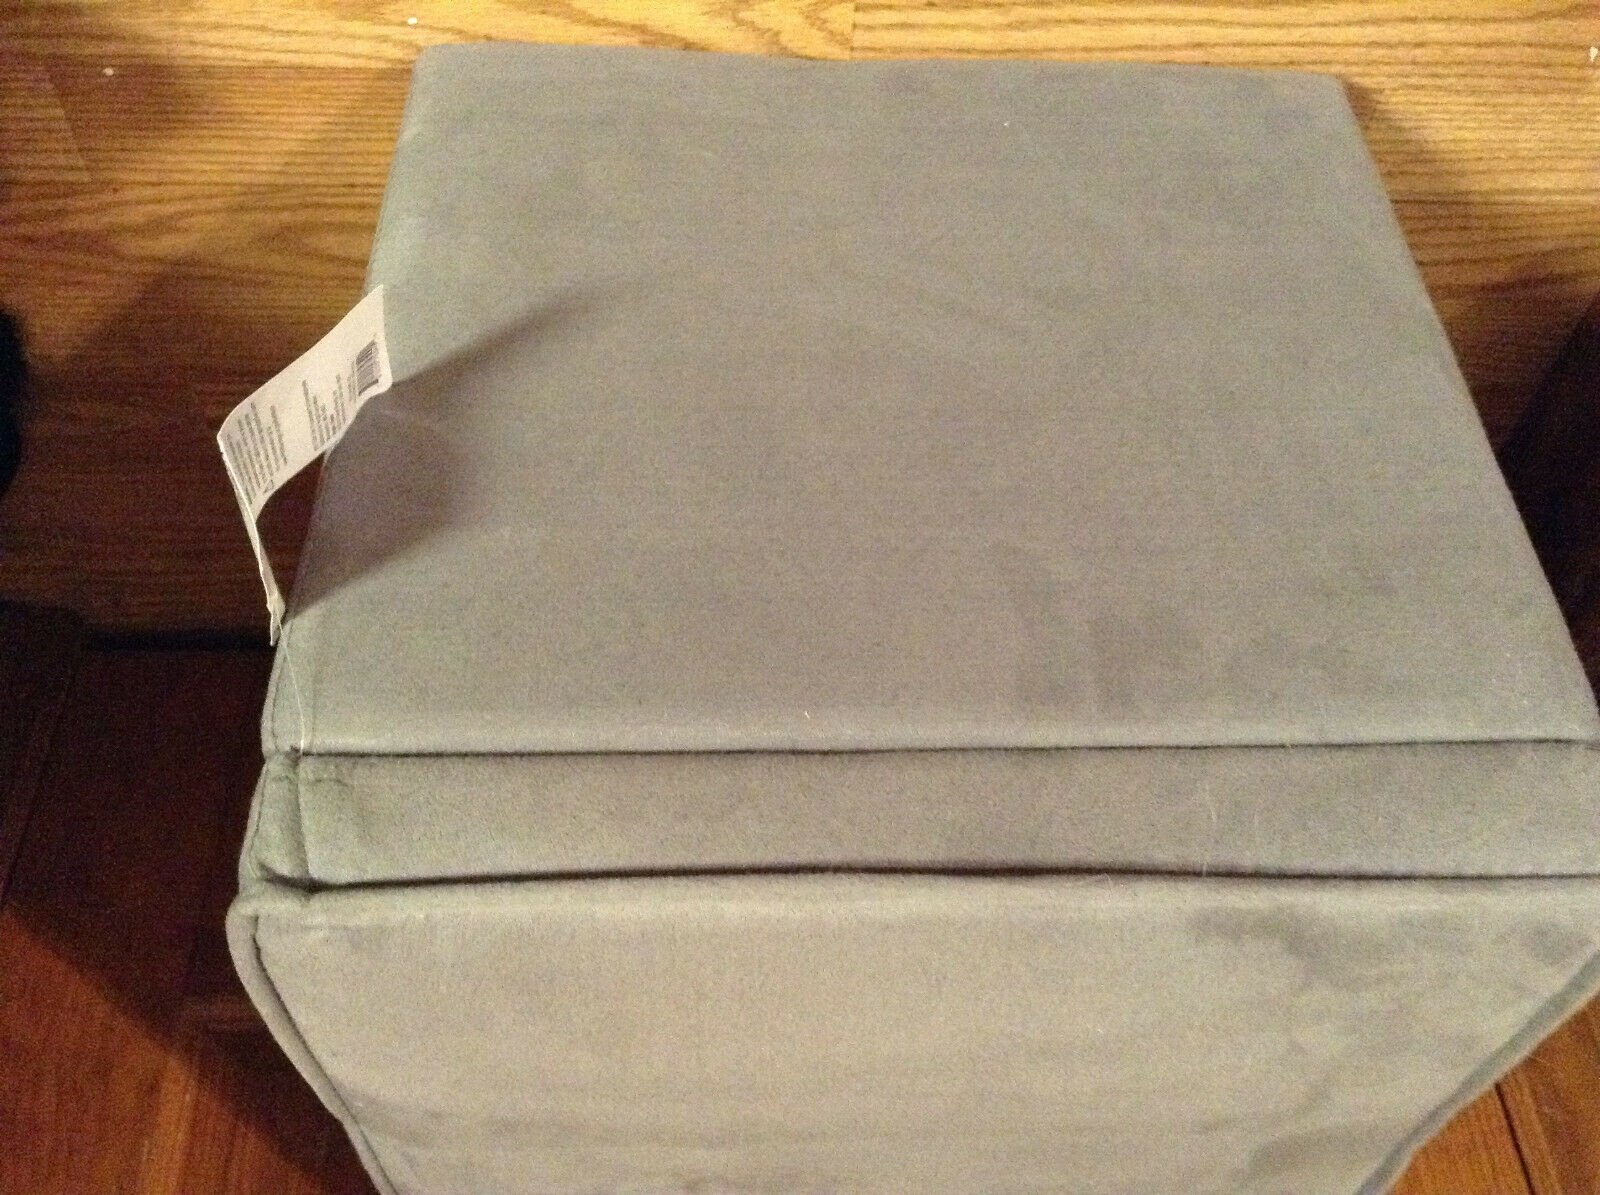 new room essentials faux suede storage ottoman grey nwt local pick up only